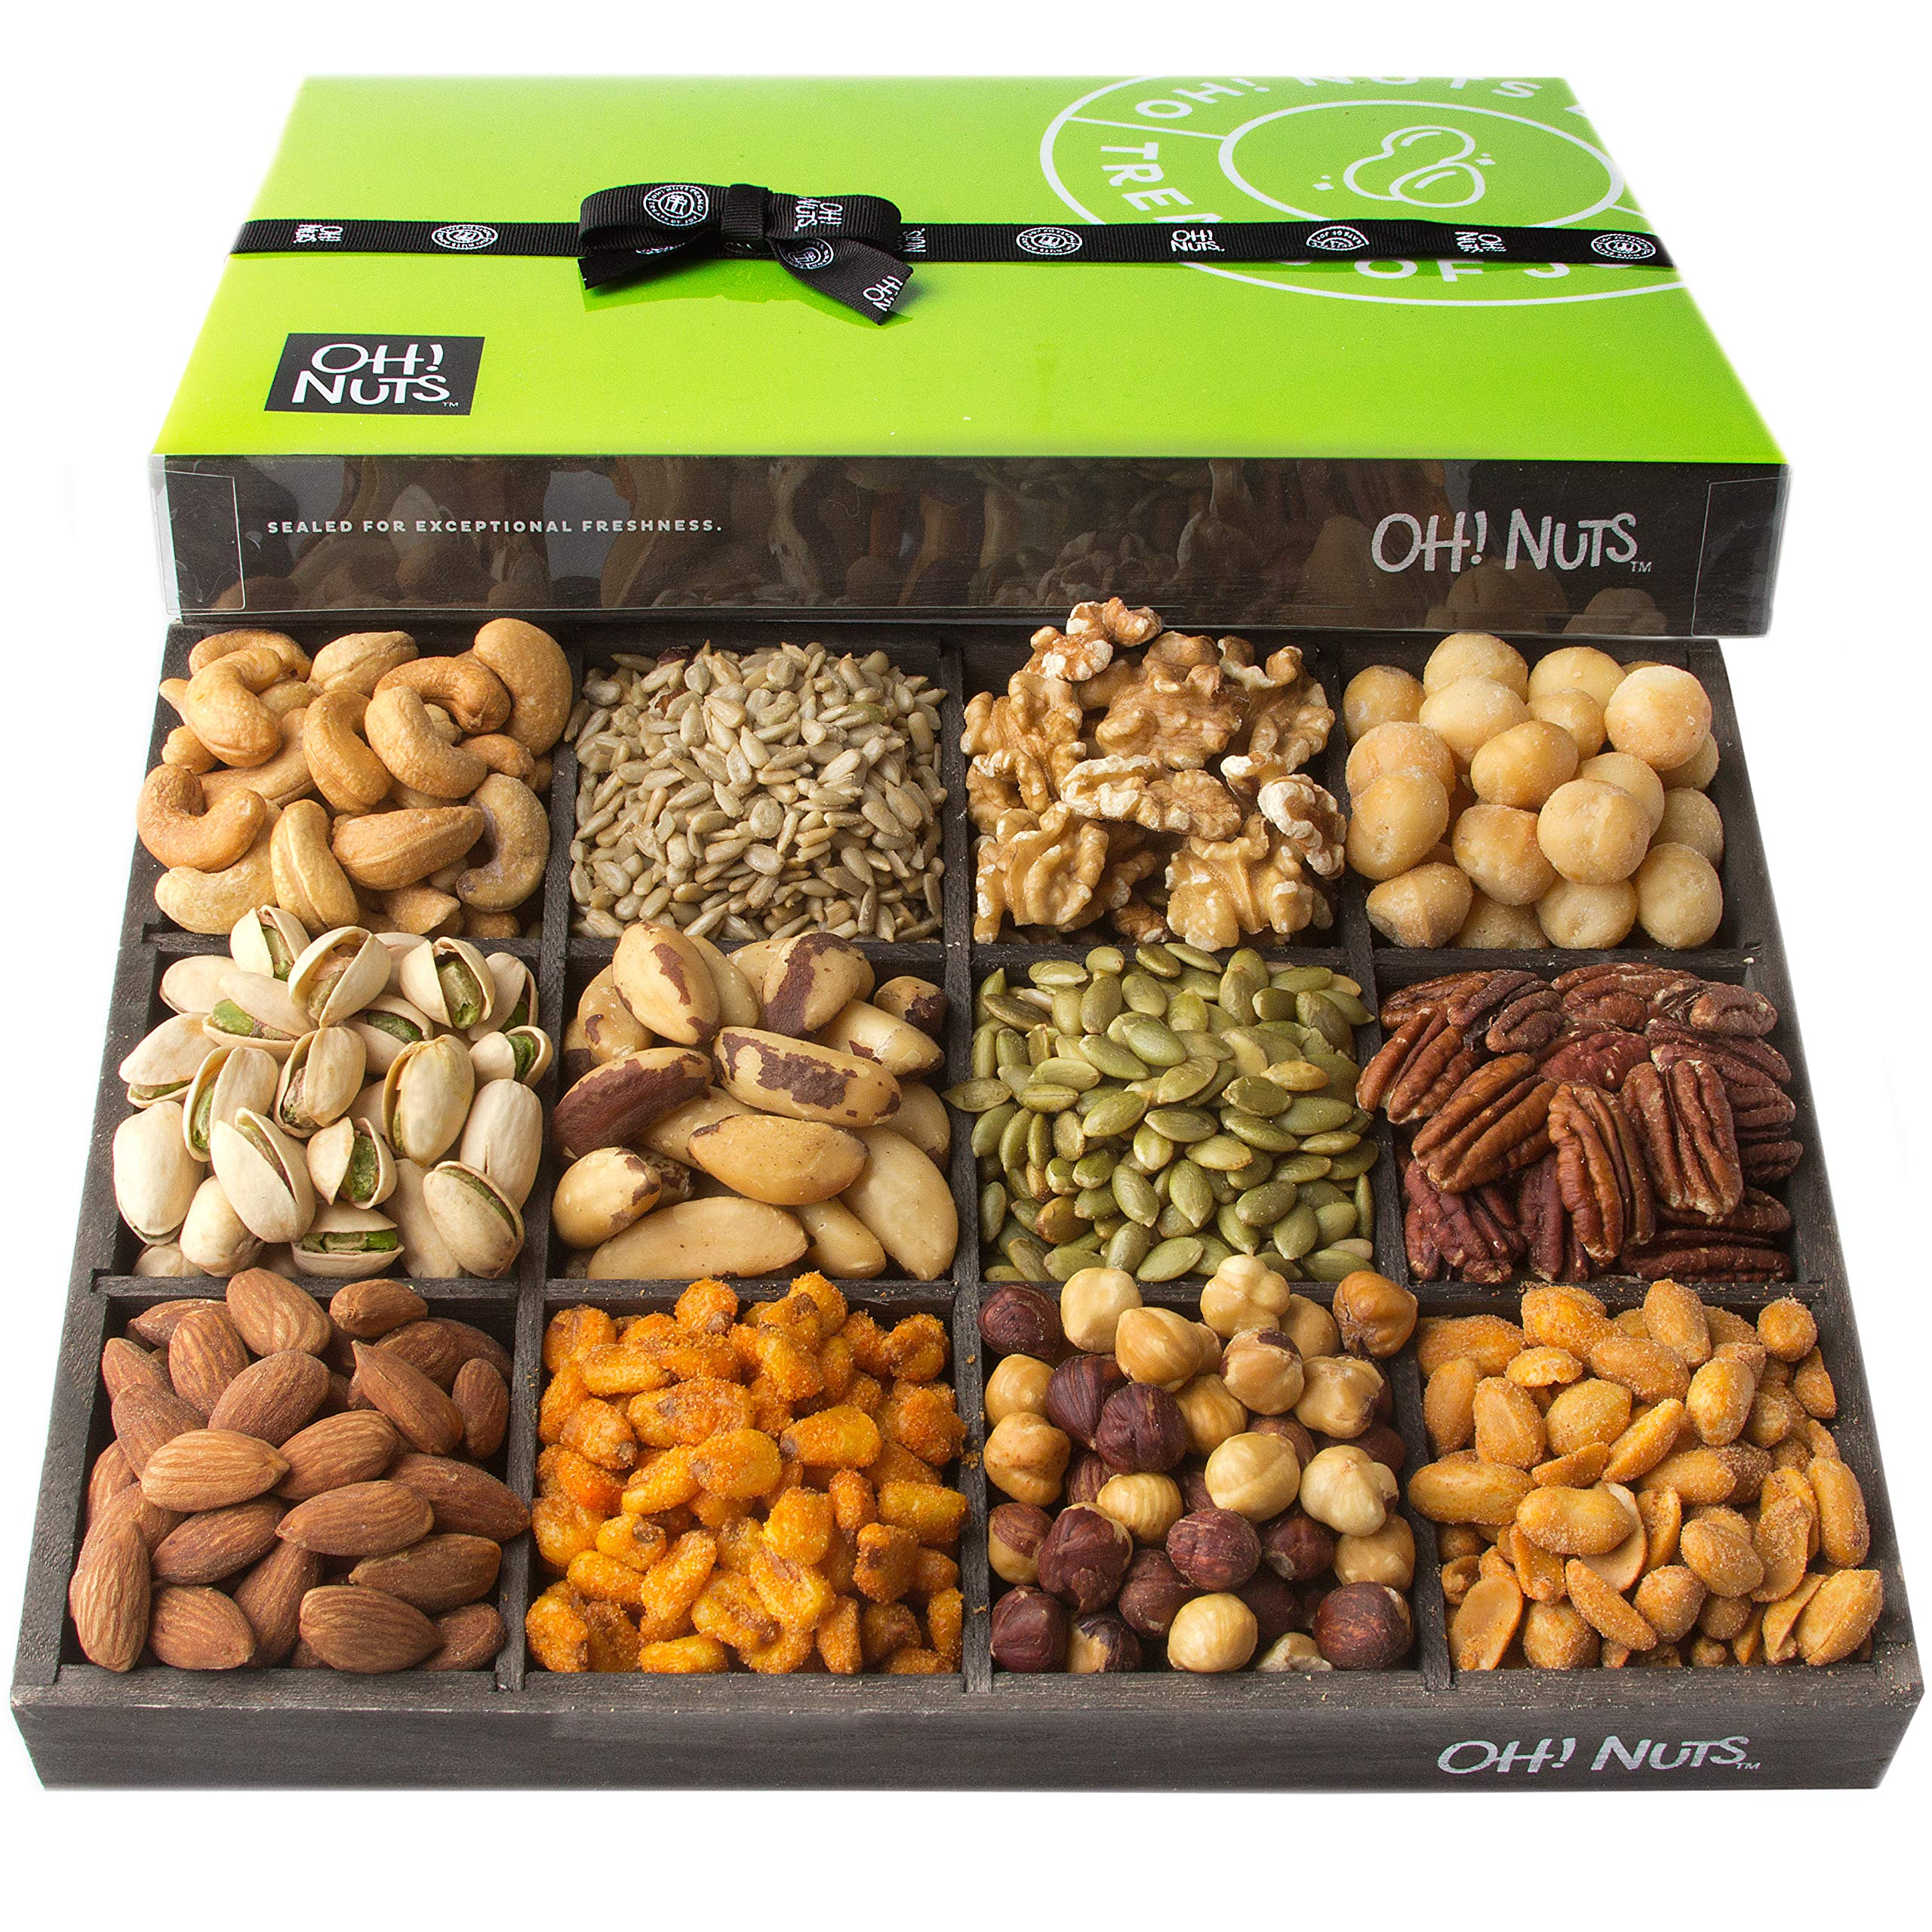 Oh! Nuts 12 Variety Mixed Nut Gift Basket, Holiday Freshly Roasted Healthy Gourmet Snack Gifts| Premium Wood Tray | Prime Christmas Food Baskets for Men & Women, Fathers & Mother's Day Unique Idea by Oh! Nuts (Image #2)